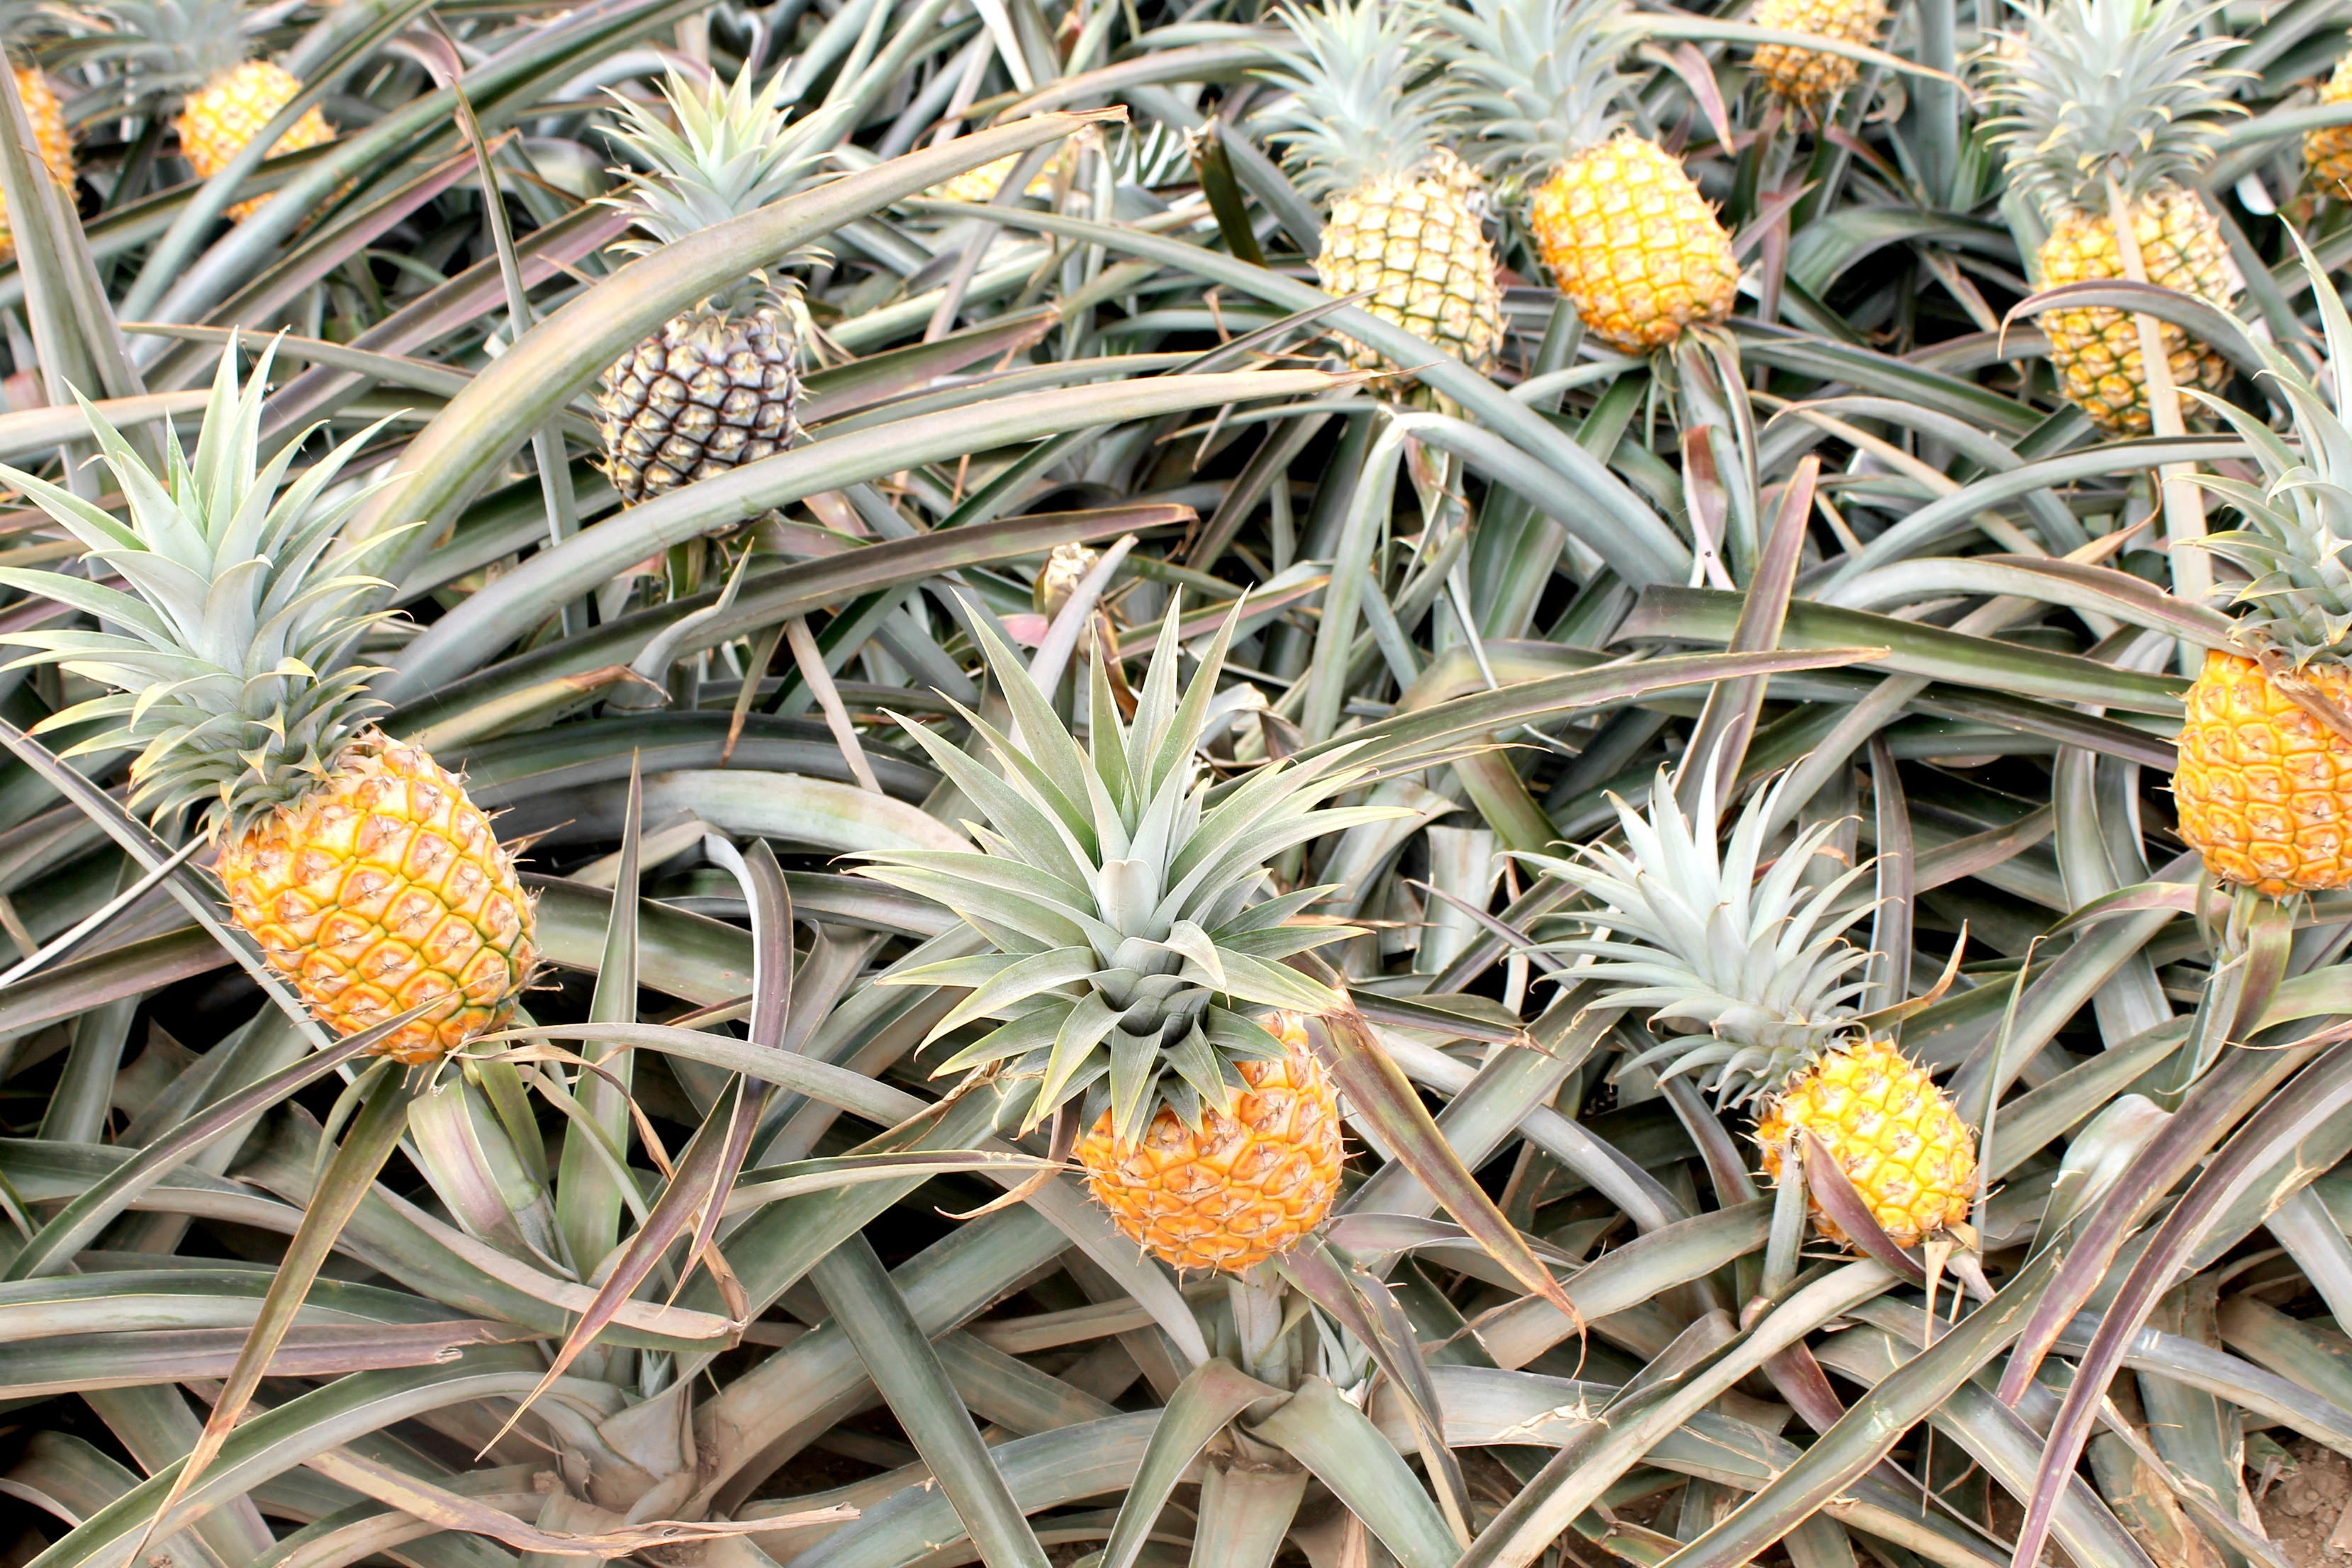 Maui Pineapple Tour Field